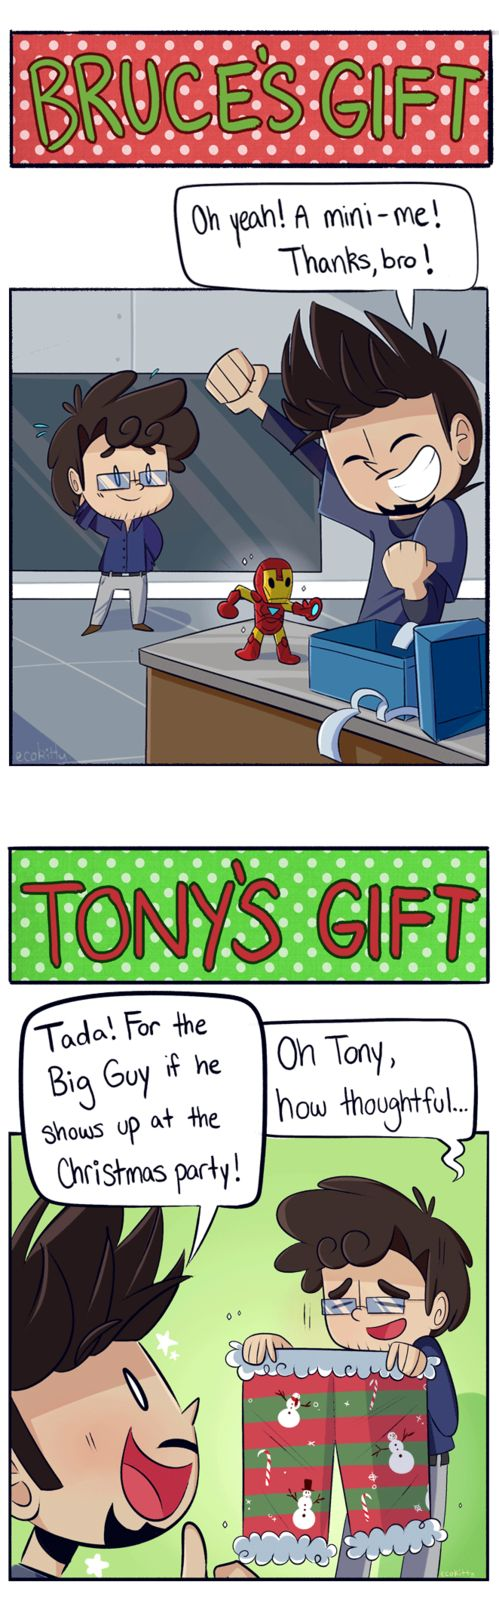 AsktheScienceBros - Christmas Gifts by ecokitty on DeviantArt